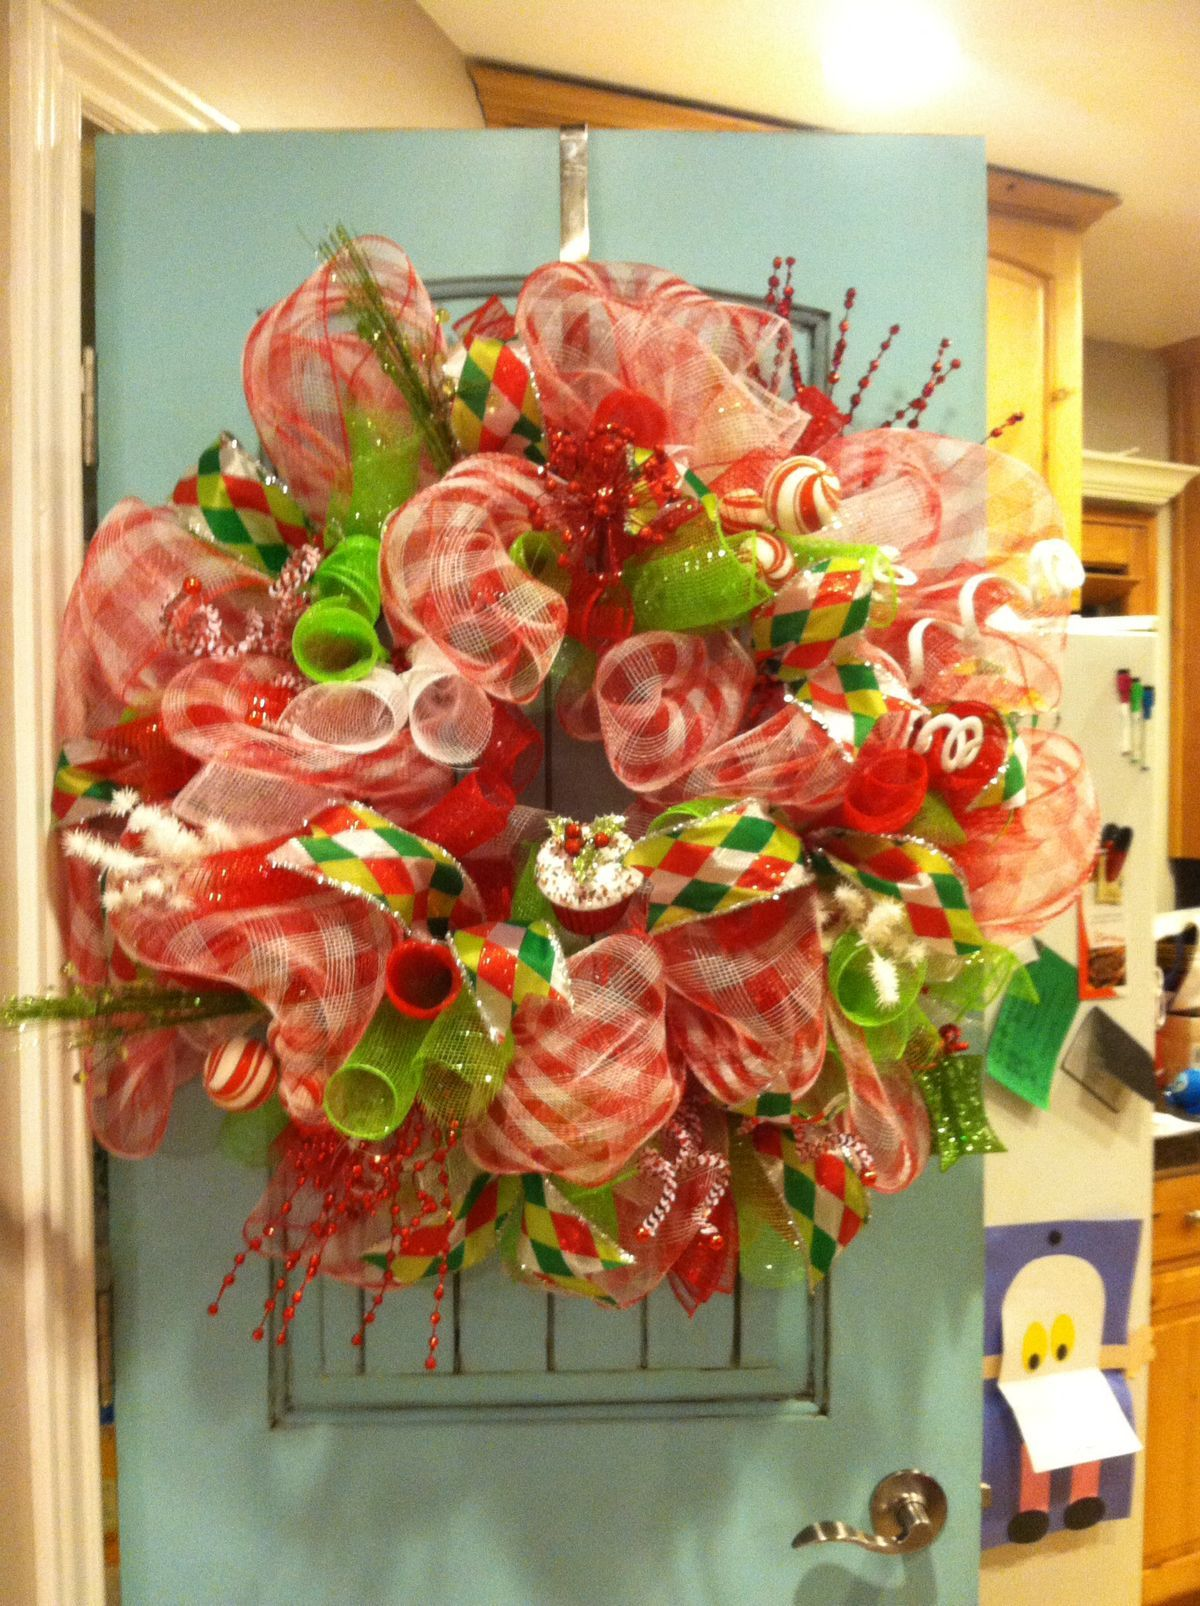 New Christmas Wreath Diy Crafting  See More Amazing Diy